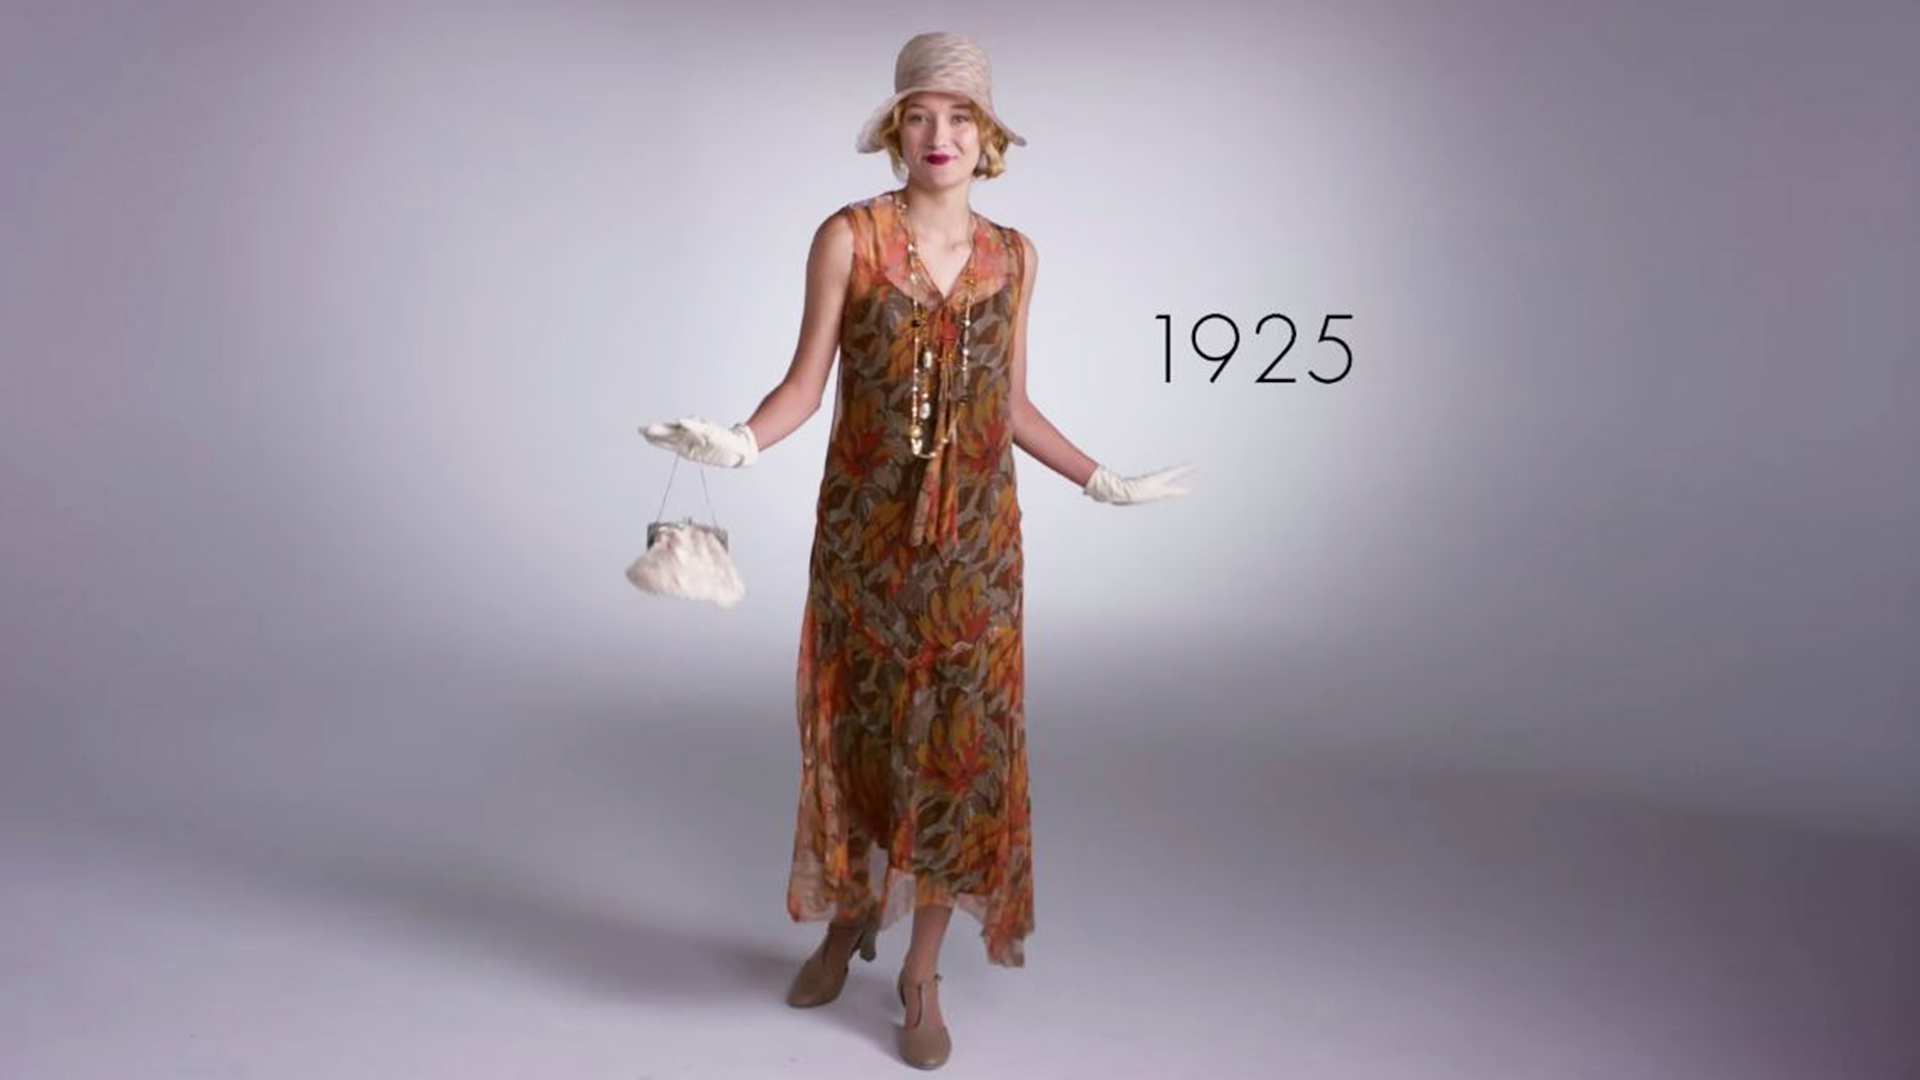 Watch 100 years of fashion in less than 3 minutes - TODAY.com